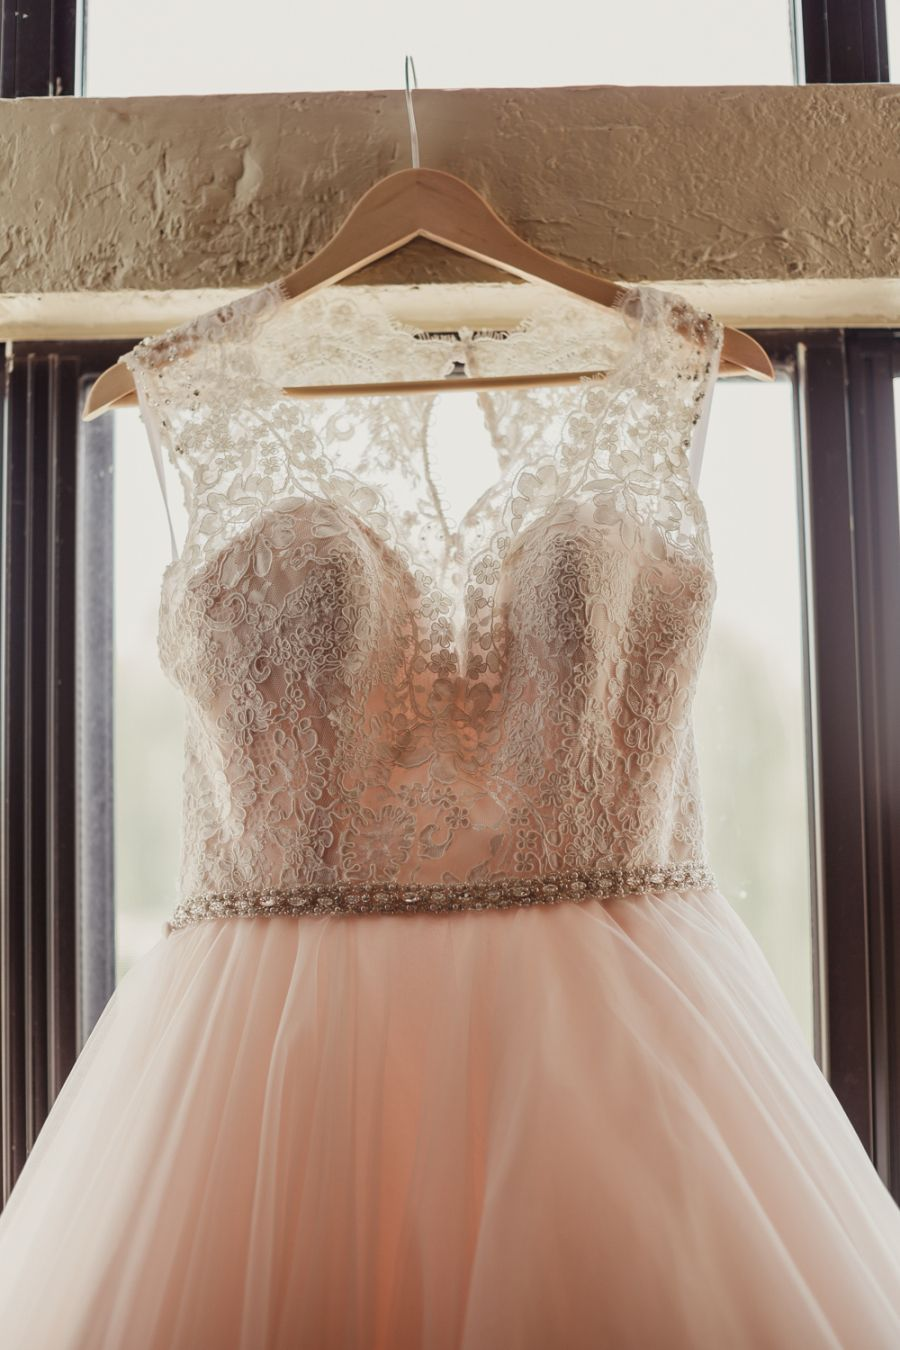 The Best Advice a Bride Has Ever Given | Allure bridal, Vaulting ...